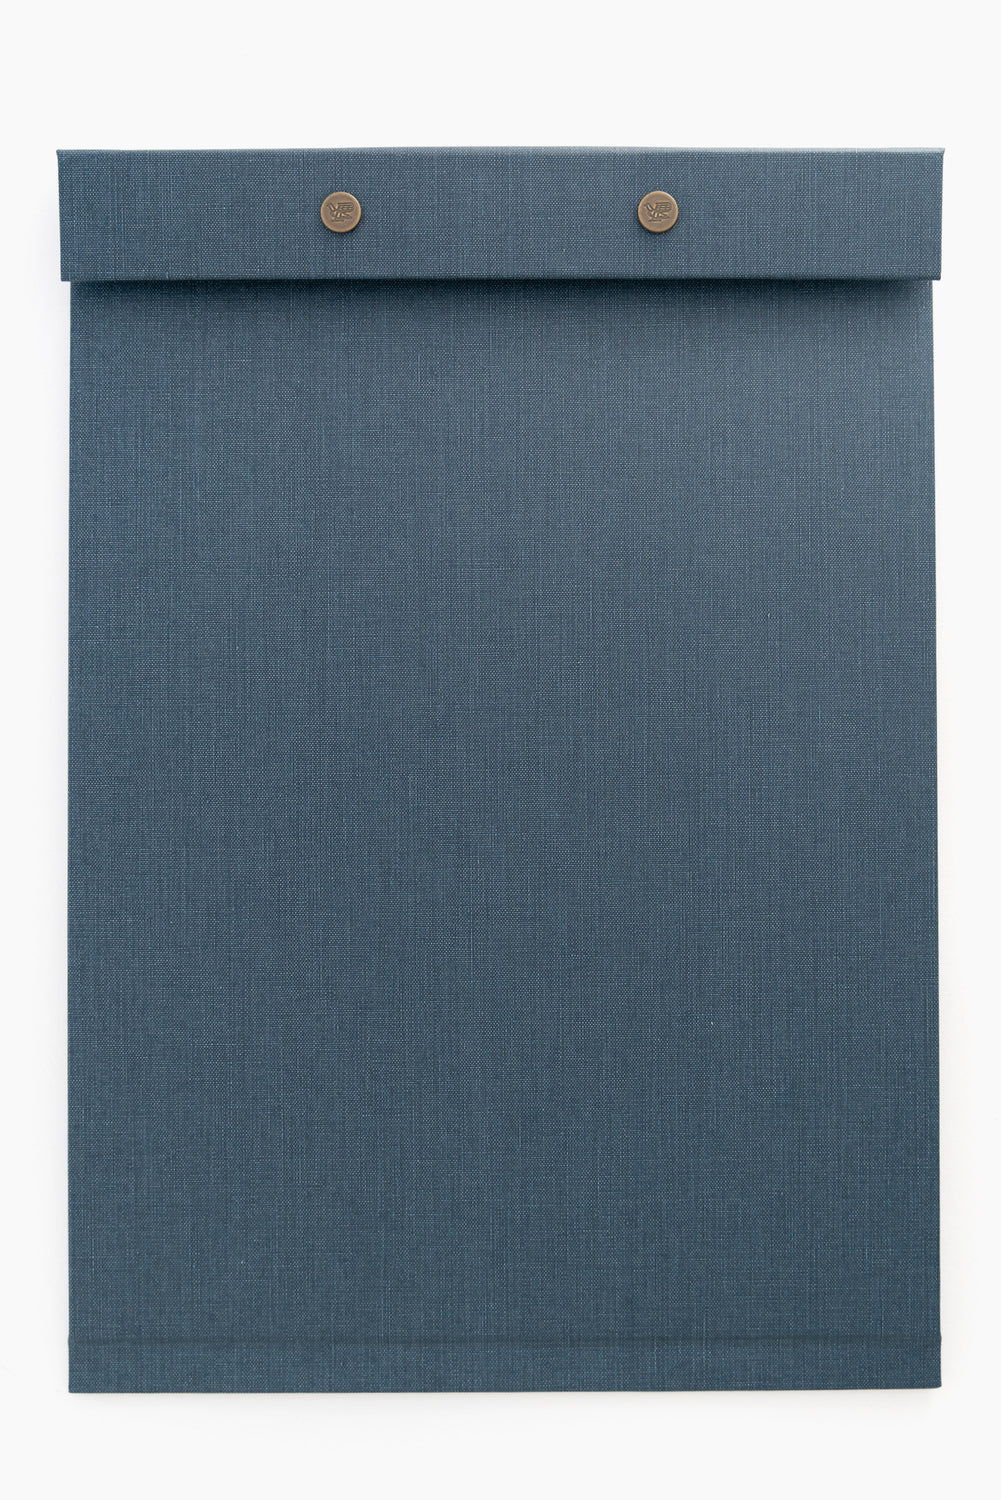 Snap Pad SQ A4 Dark Blue